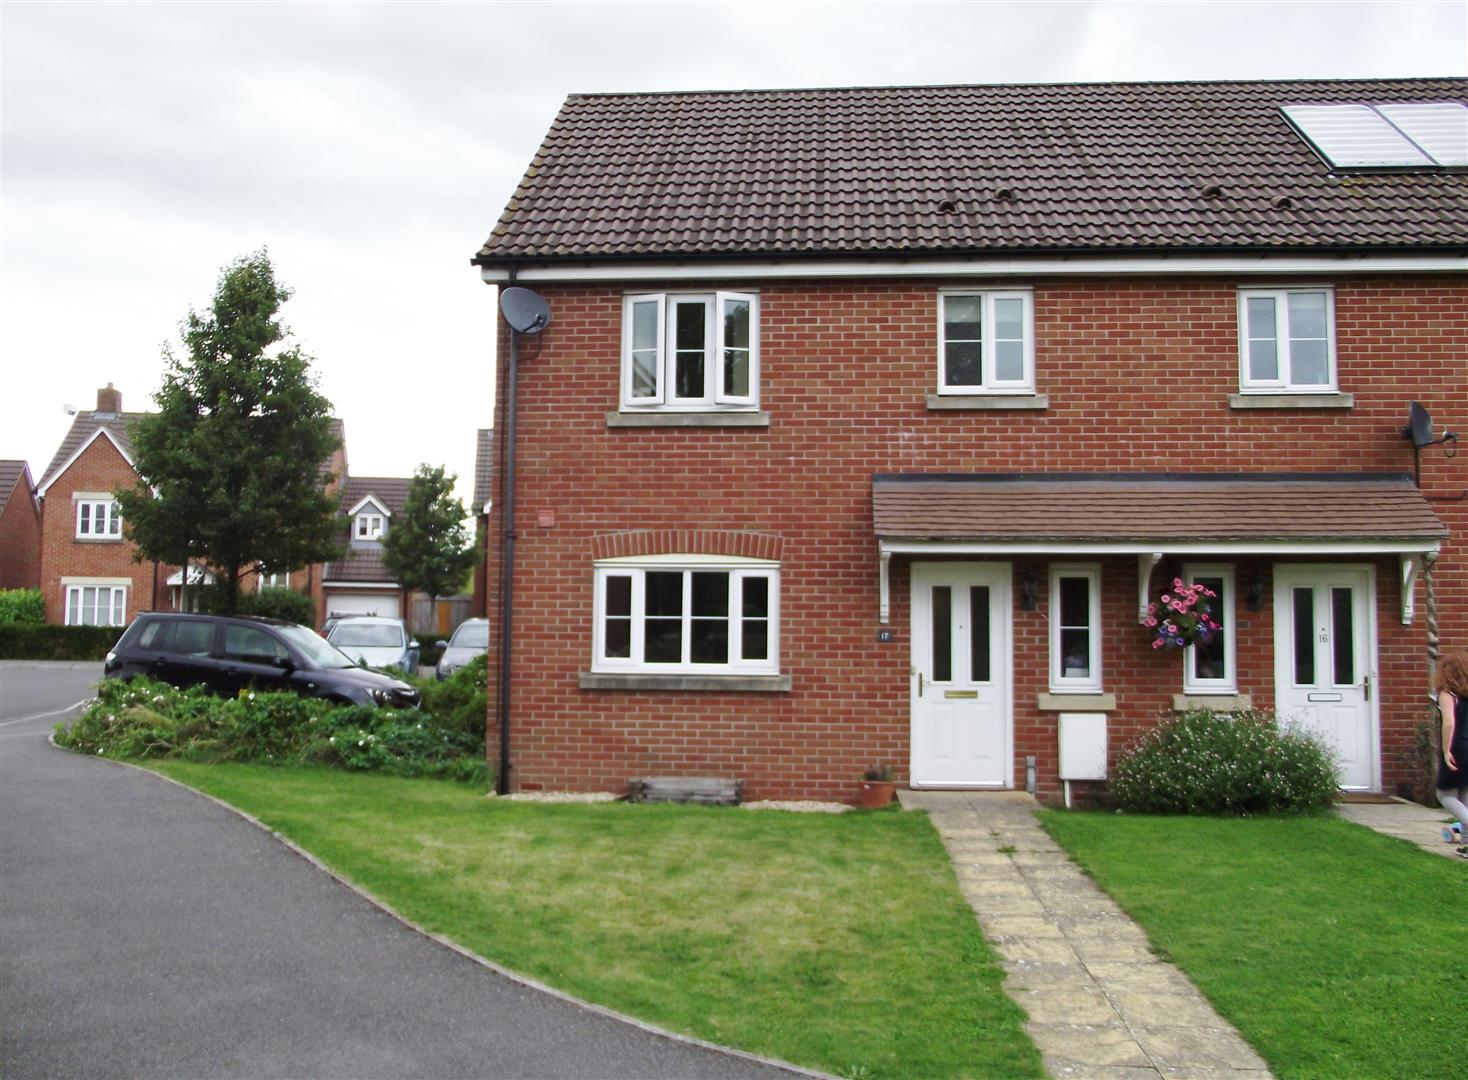 3 Bedrooms Property for sale in Witchcombe Close, Great Cheverell, Devizes